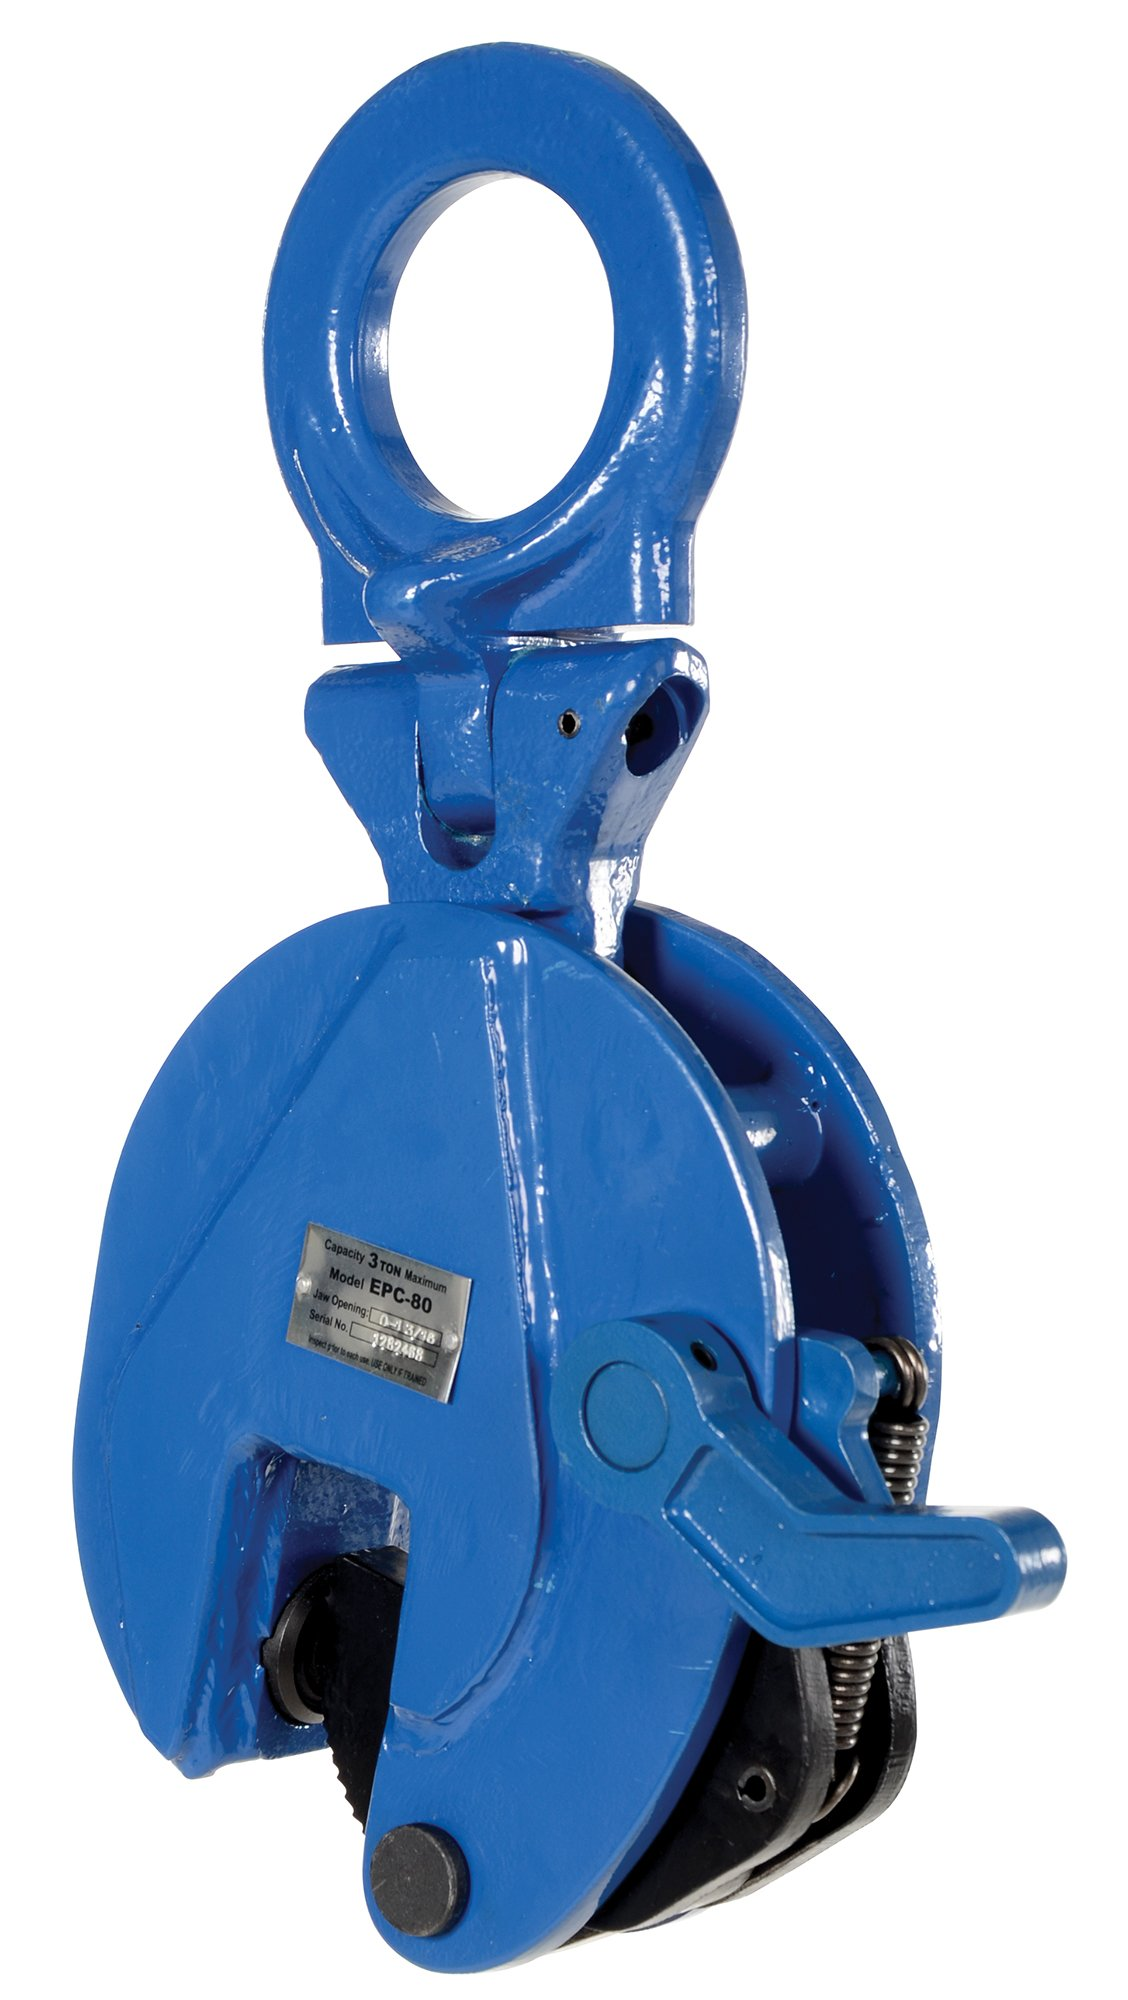 Vestil EPC-80 Vertical Plate Clamp, 1.19'' Plate Thickness, 6600 lbs Working Load Limit, 2.38'' Bale Opening